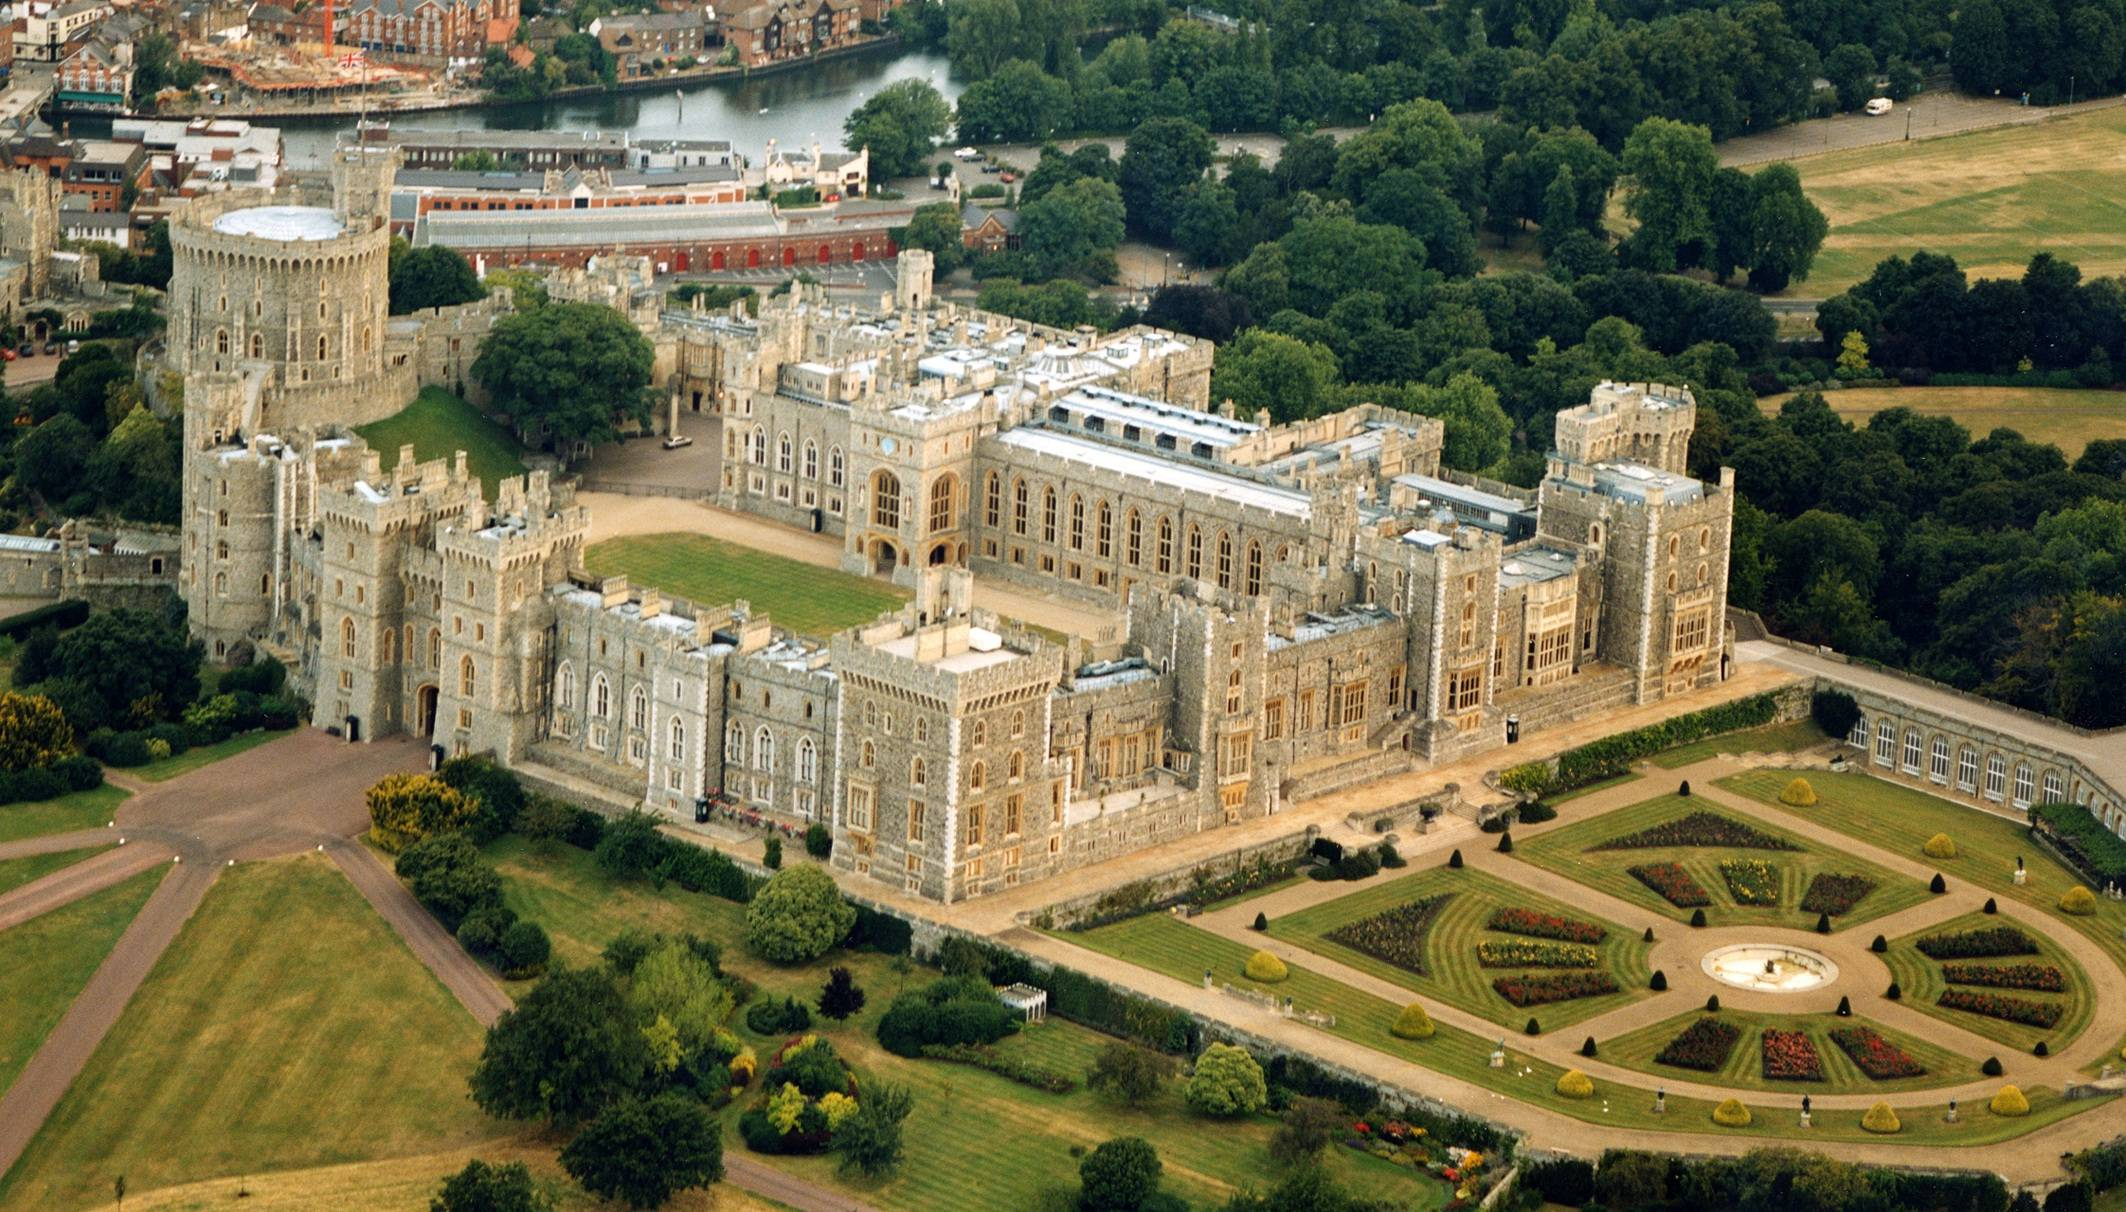 windsor castle 2 - Luxury Chauffeur Driven Tours: The Best Way to See London Castles